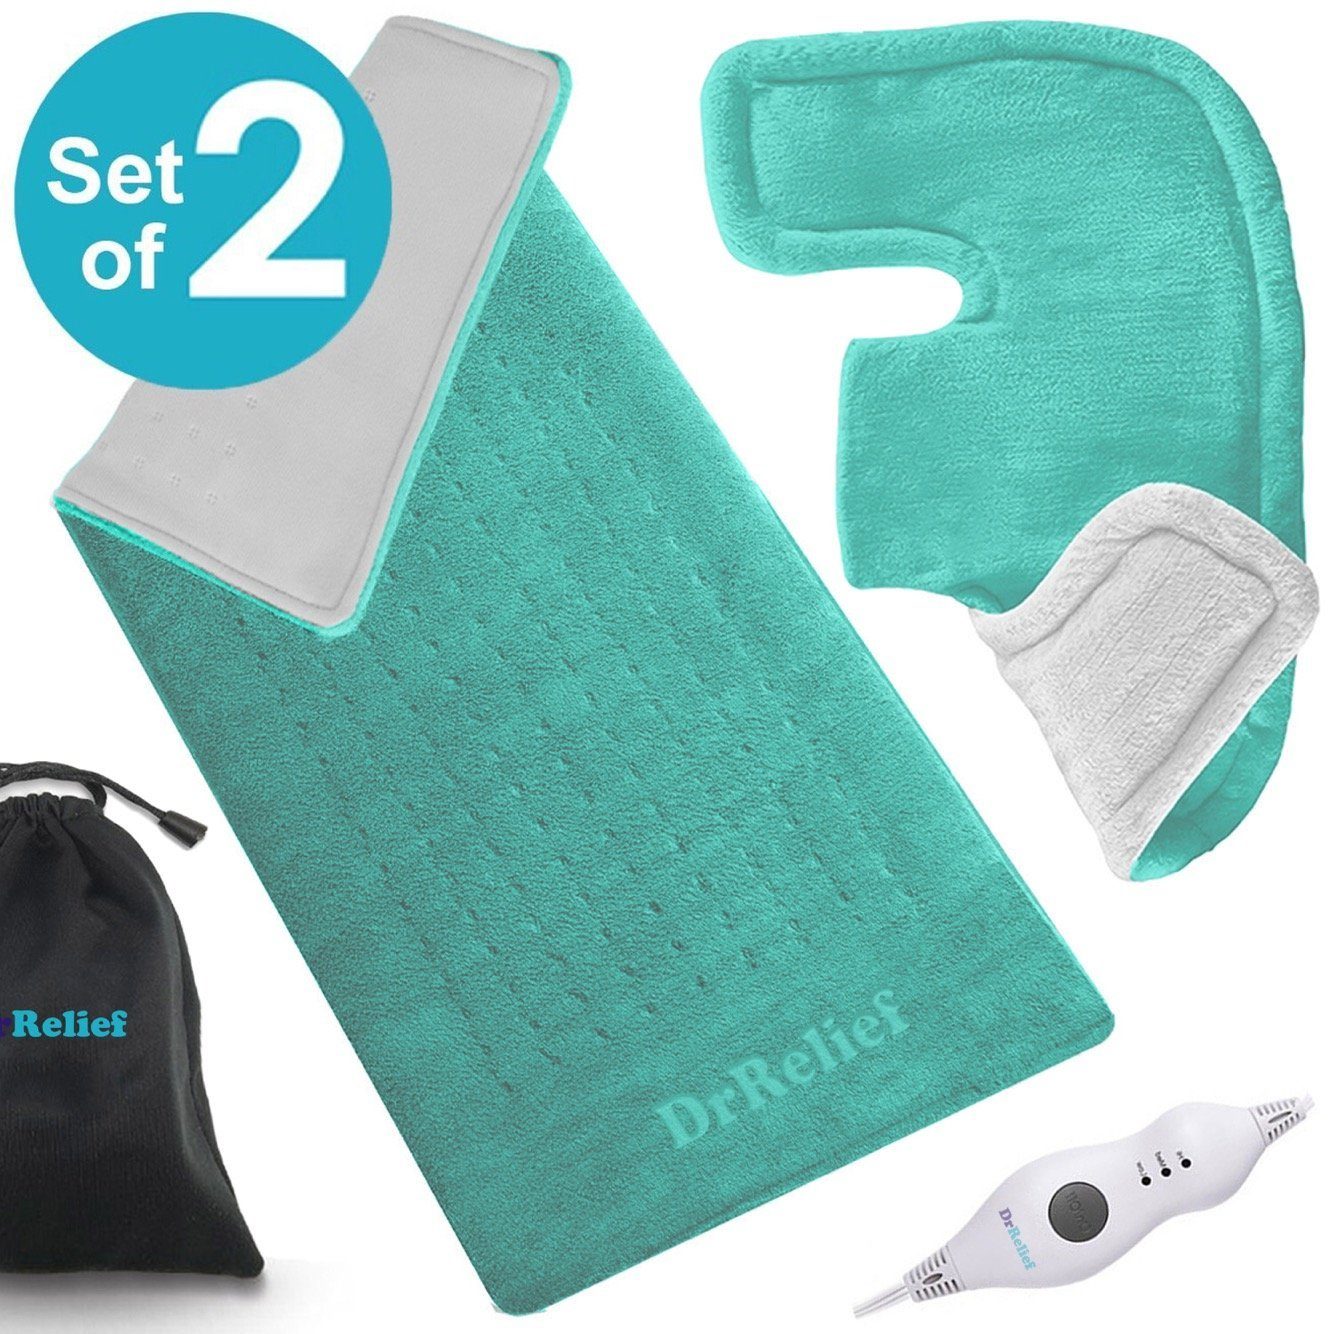 Heating Pad Gift Set – Shoulder & Neck Heating Pad and Extra-Large 12 x 24 Inch Heating Wrap for Back or Abdominal Pain Relief – Moist Heating Option with Auto Shut Off - One Year Warranty